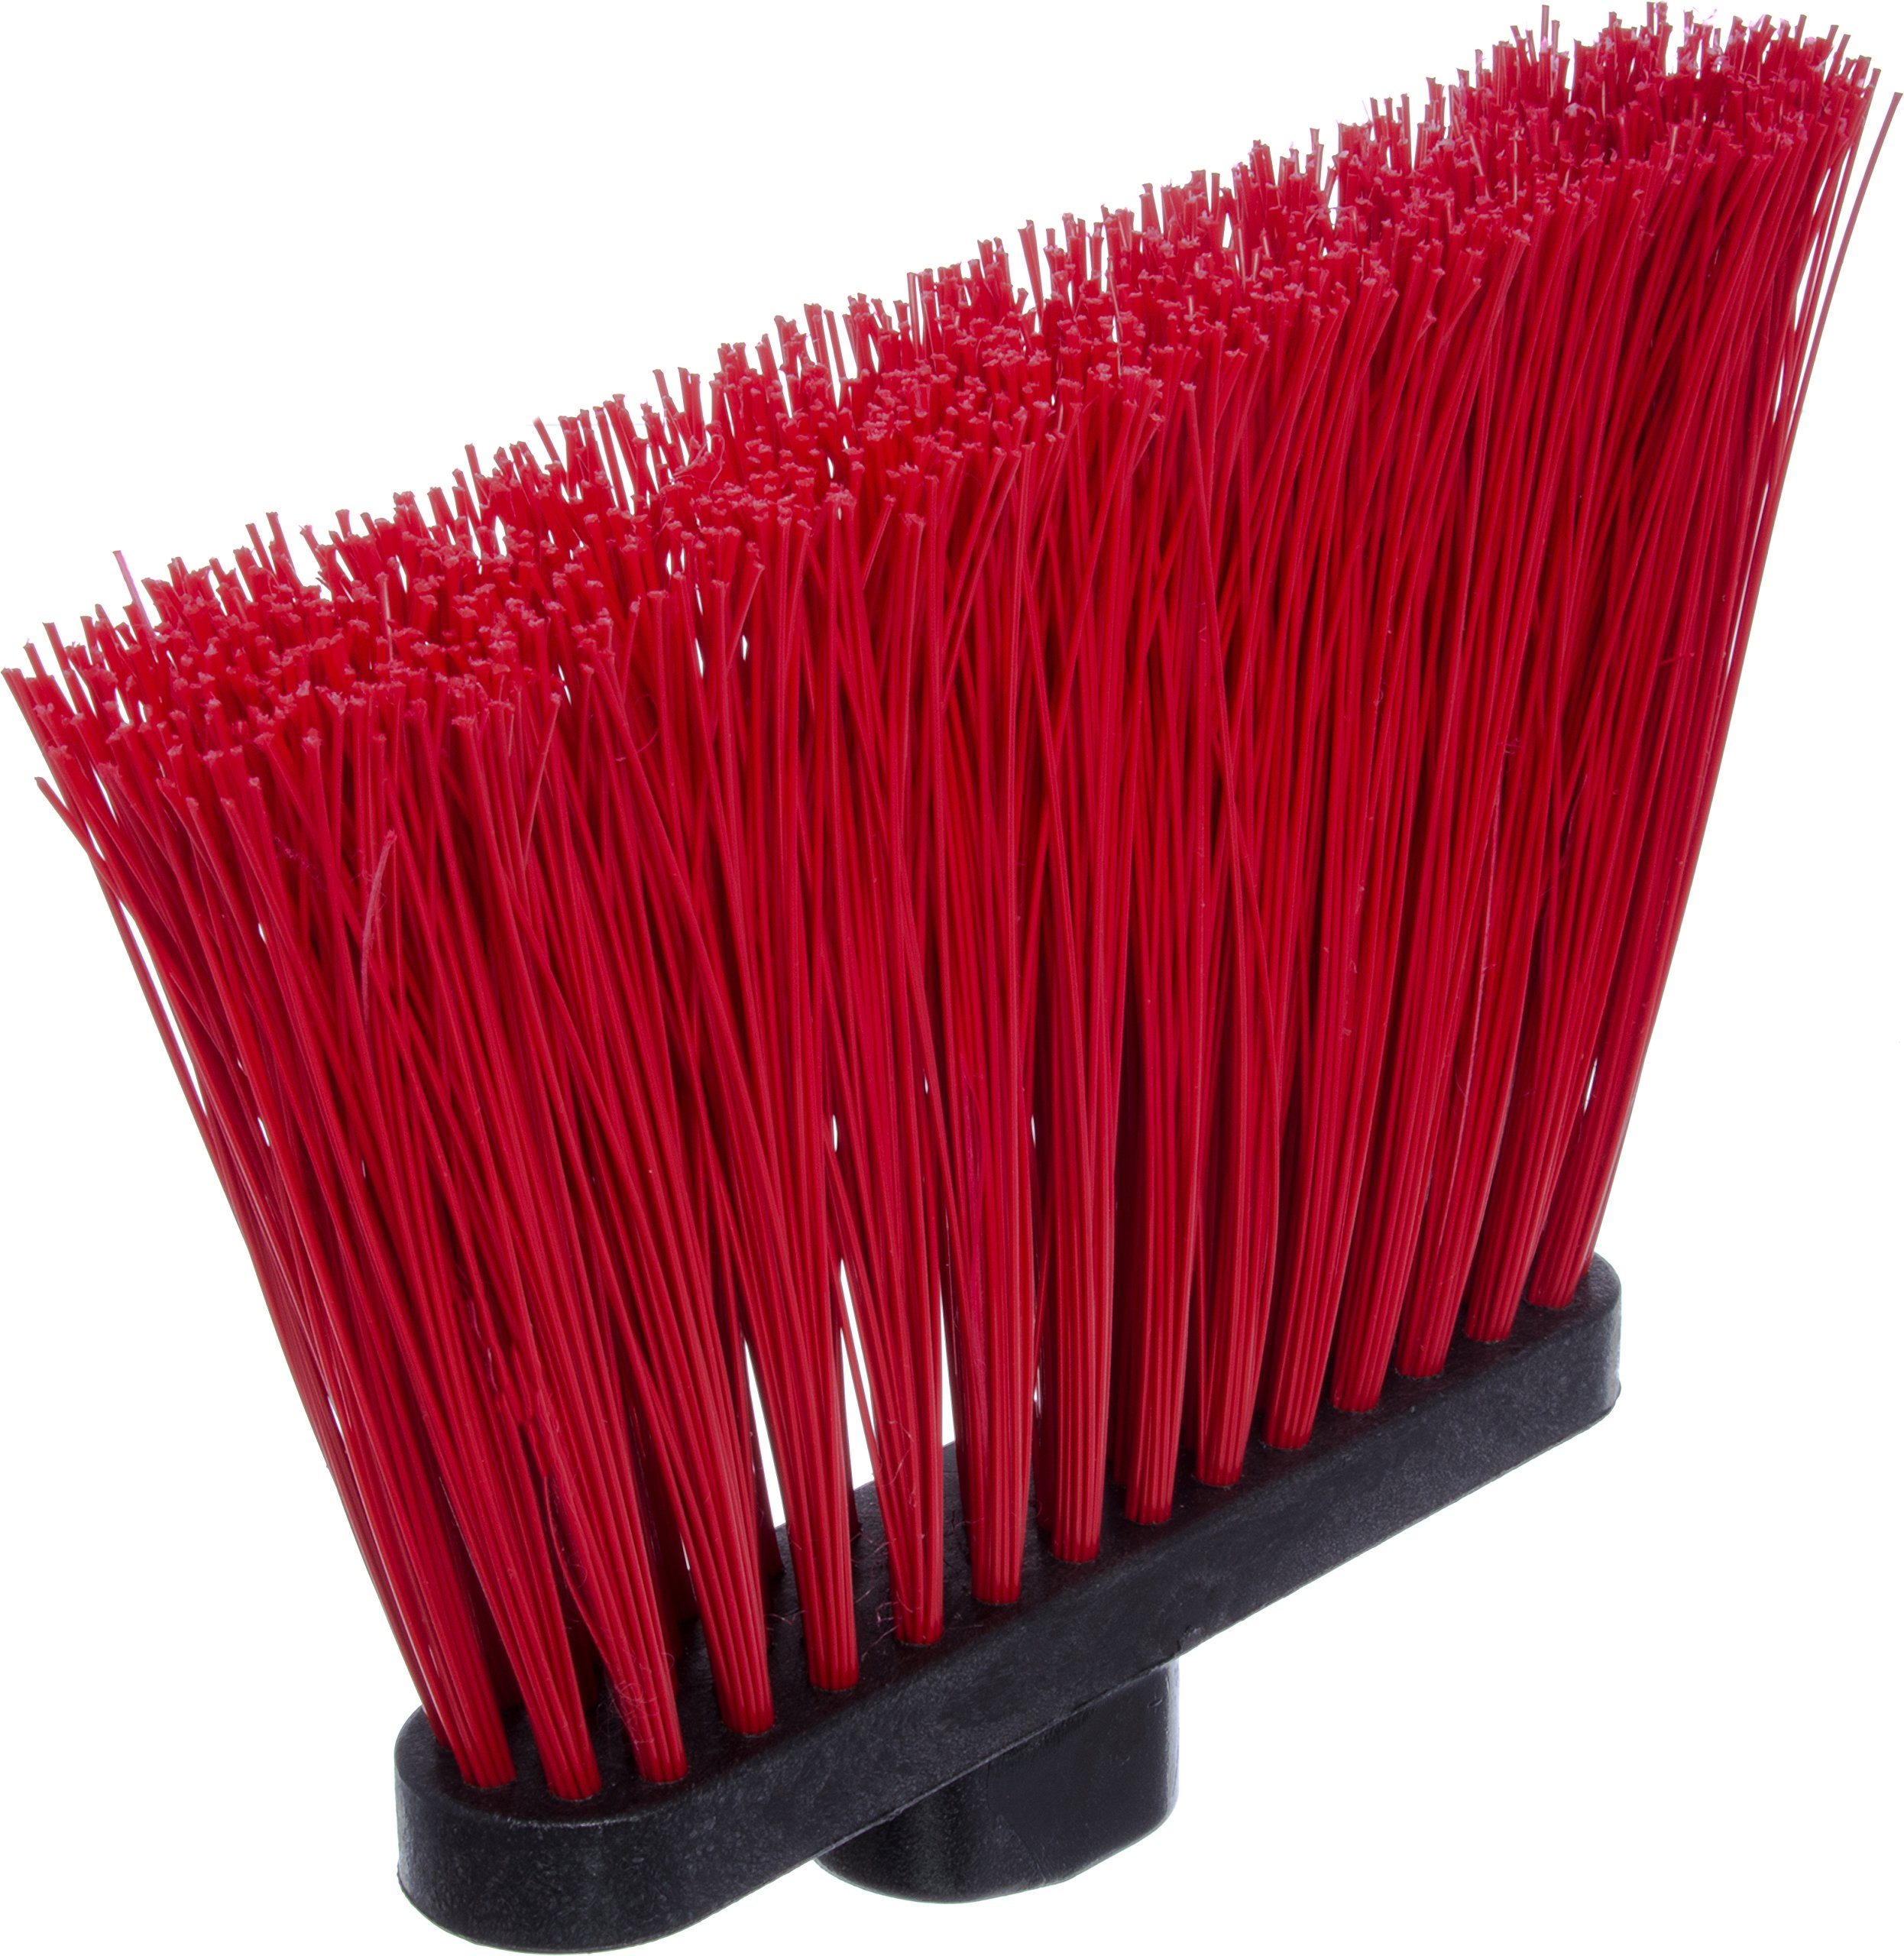 Carlisle 4108305 Sparta Duo-Sweep Unflagged Angle Broom with Fiberglass Handle, 54'' Length, Red (Pack of 12) by Carlisle (Image #4)